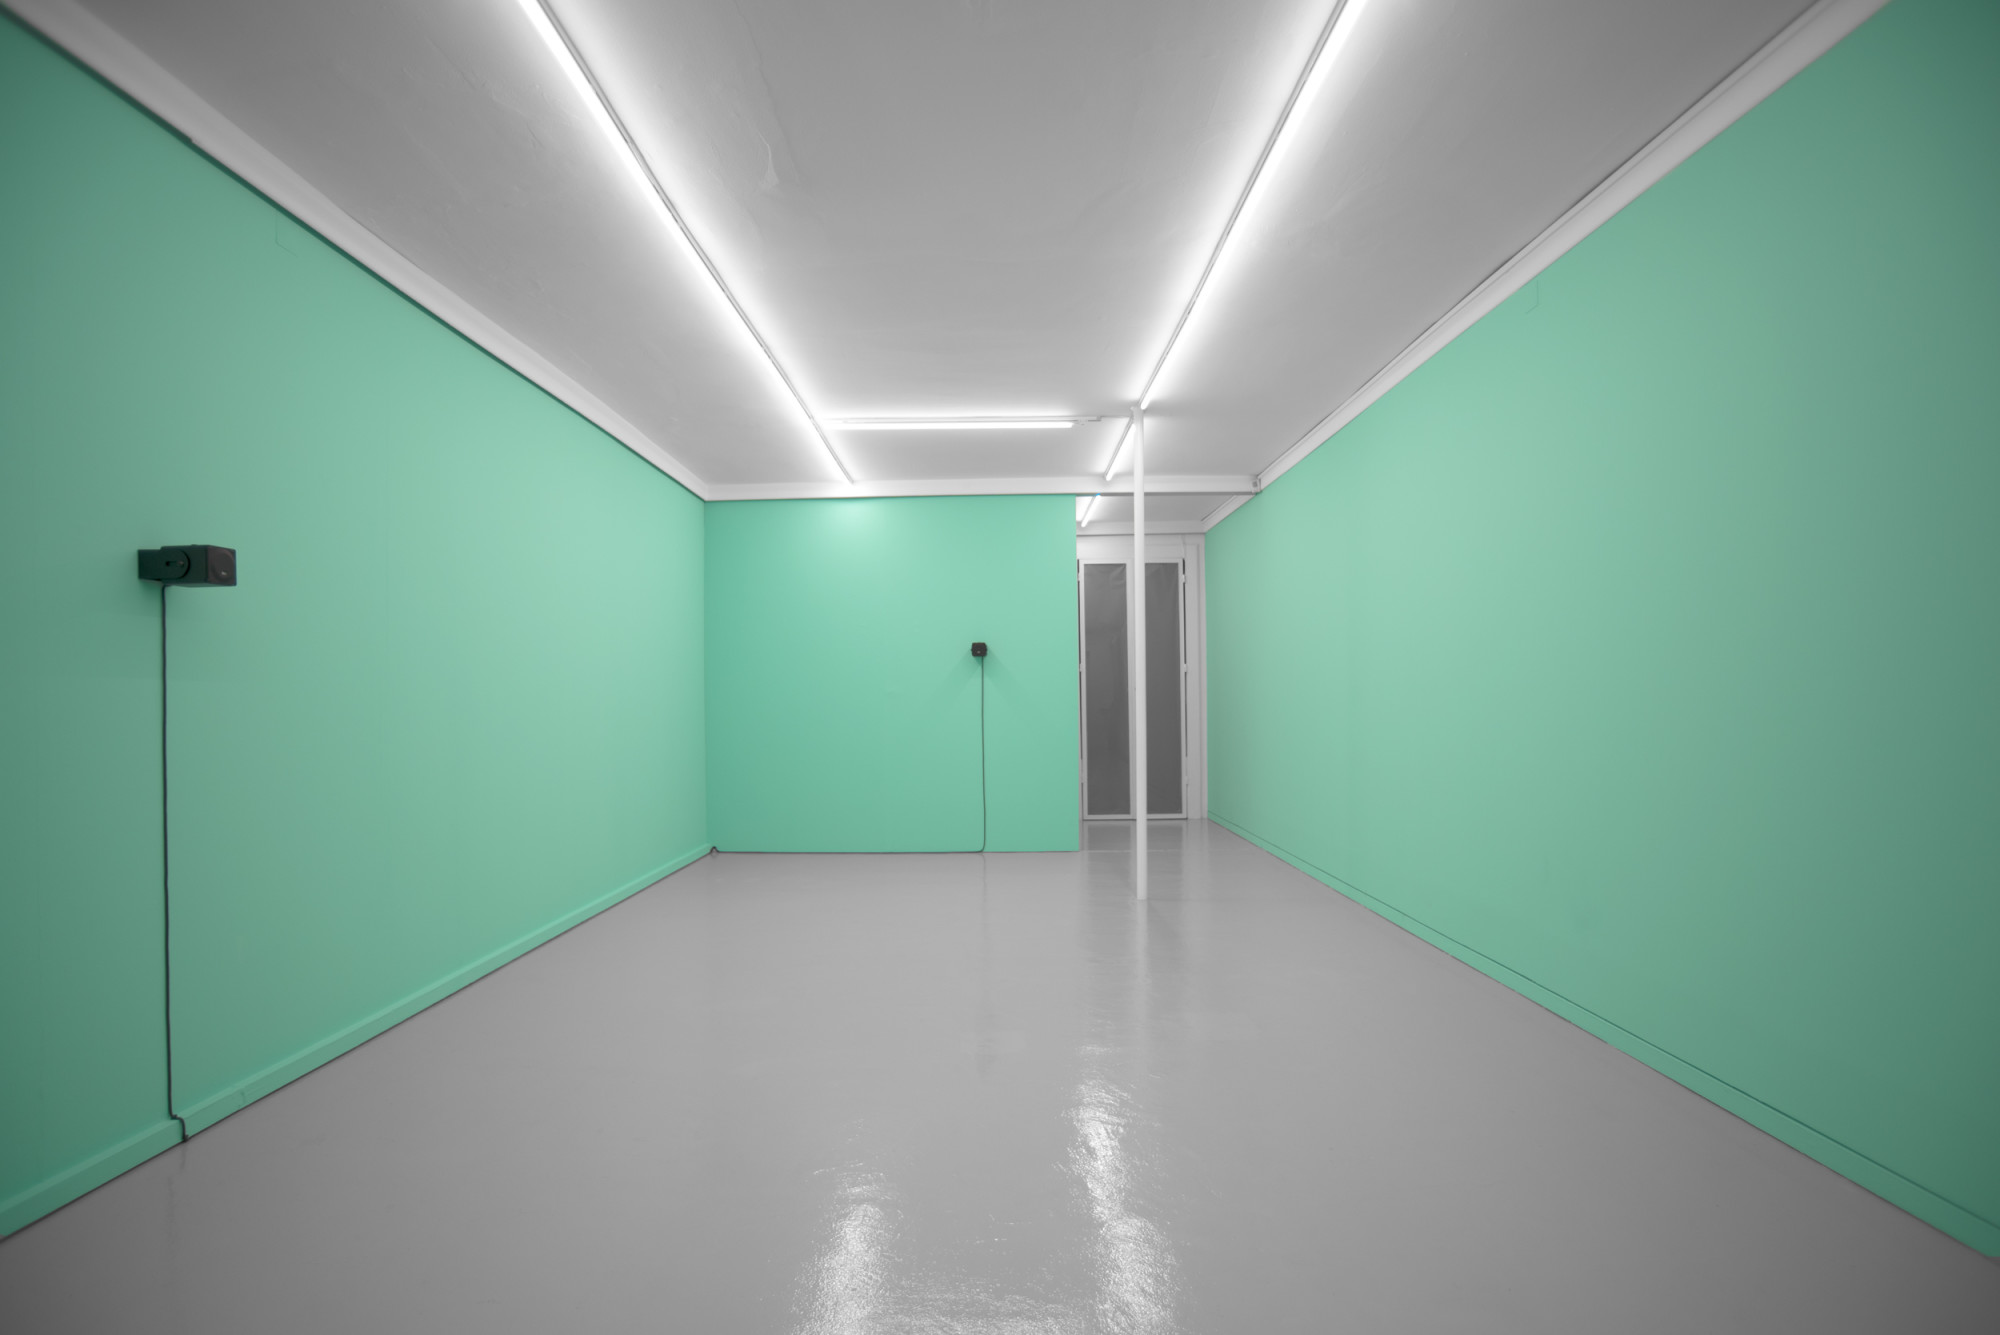 <p>Installation view, Florian Hecker, <em>Synthetic Statistics</em>, Porta33, Funchal, 25 May - 10 August 2019</p><p>Photography: Magda Pereira</p>